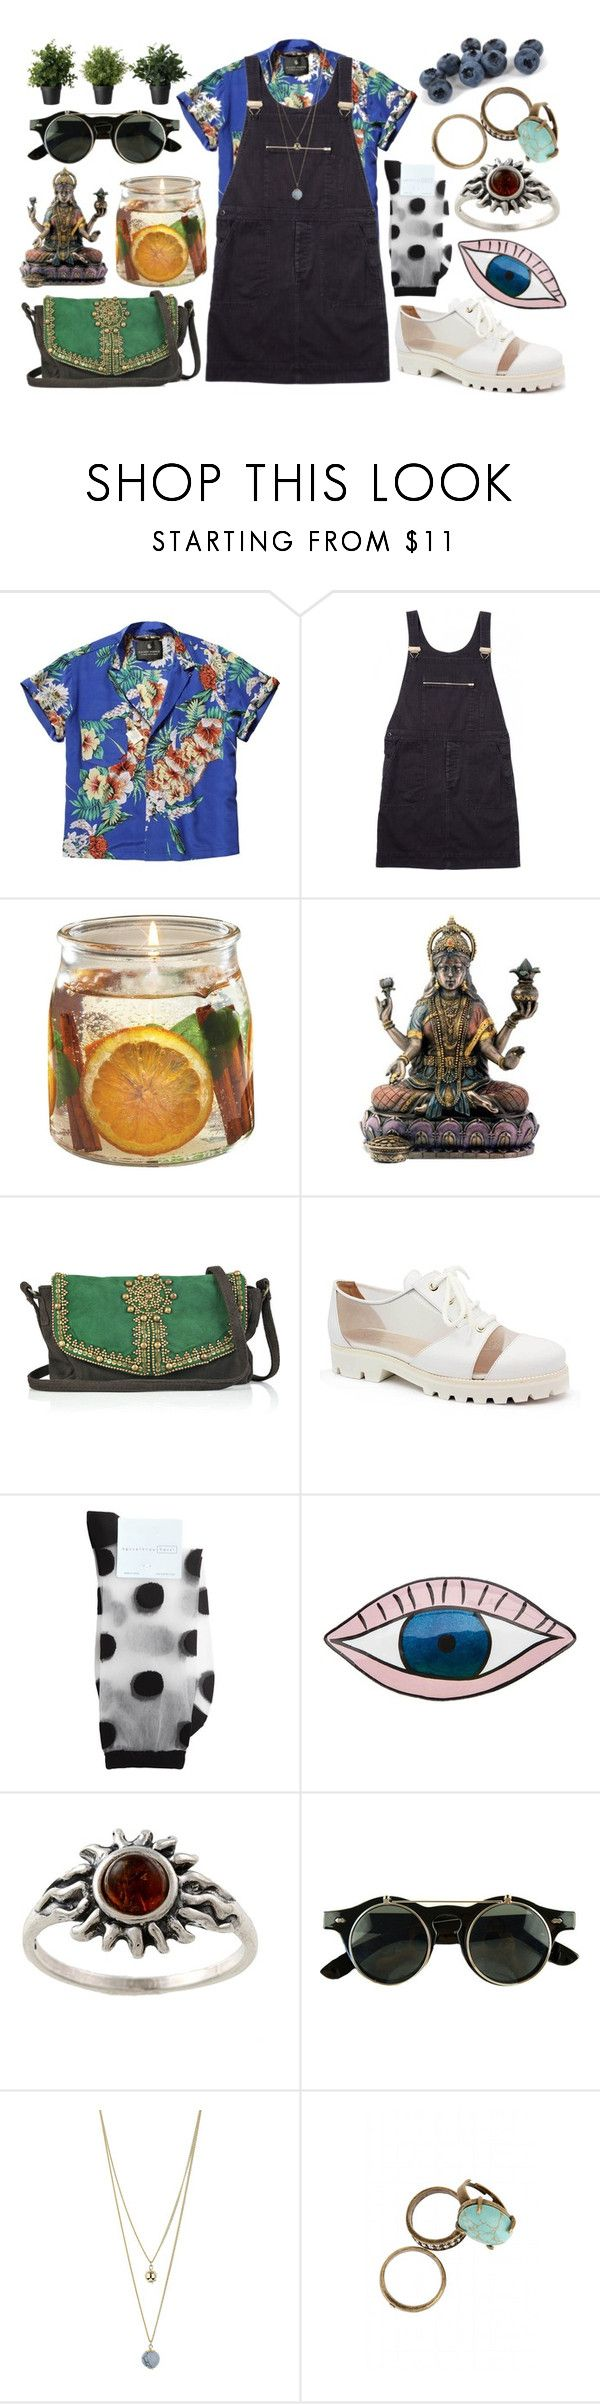 """ha- whyy"" by grunge-kittens ❤ liked on Polyvore featuring Scotch & Soda, Margaret Howell, Antik Batik, Walter Steiger, Hansel from Basel, JC de Castelbajac, Amber Sun and Dorothy Perkins"